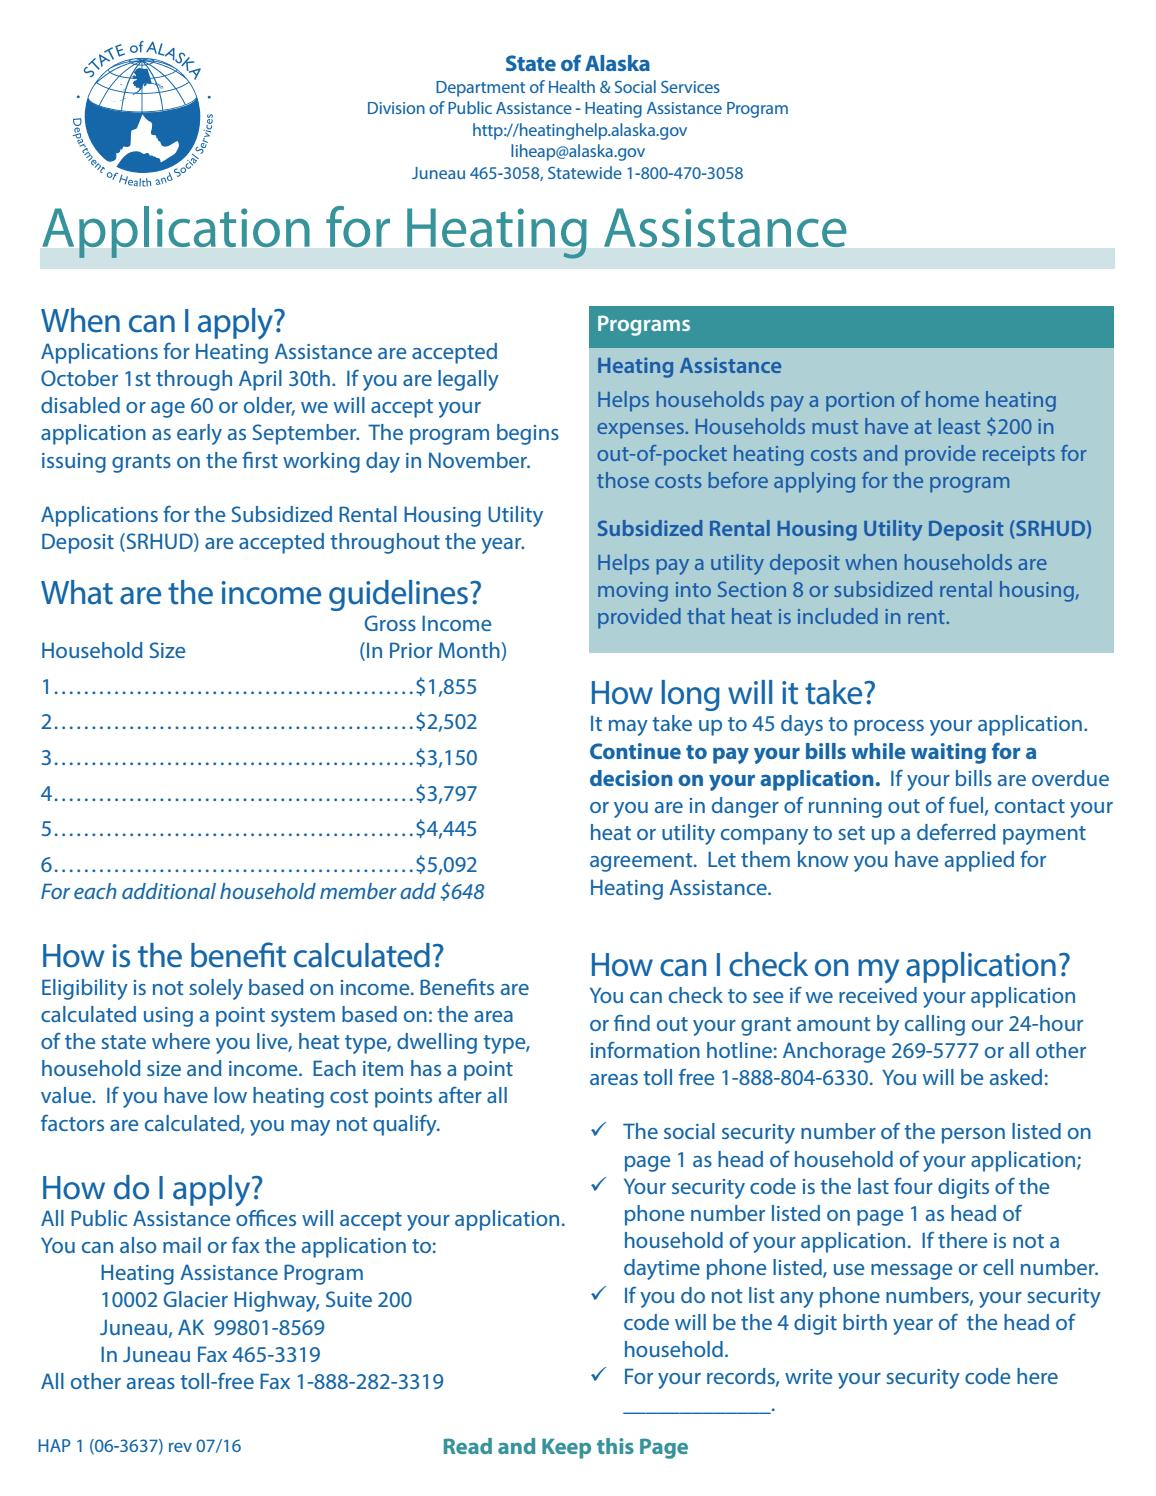 How to Apply for Public Assistance How to Apply for Public Assistance new images